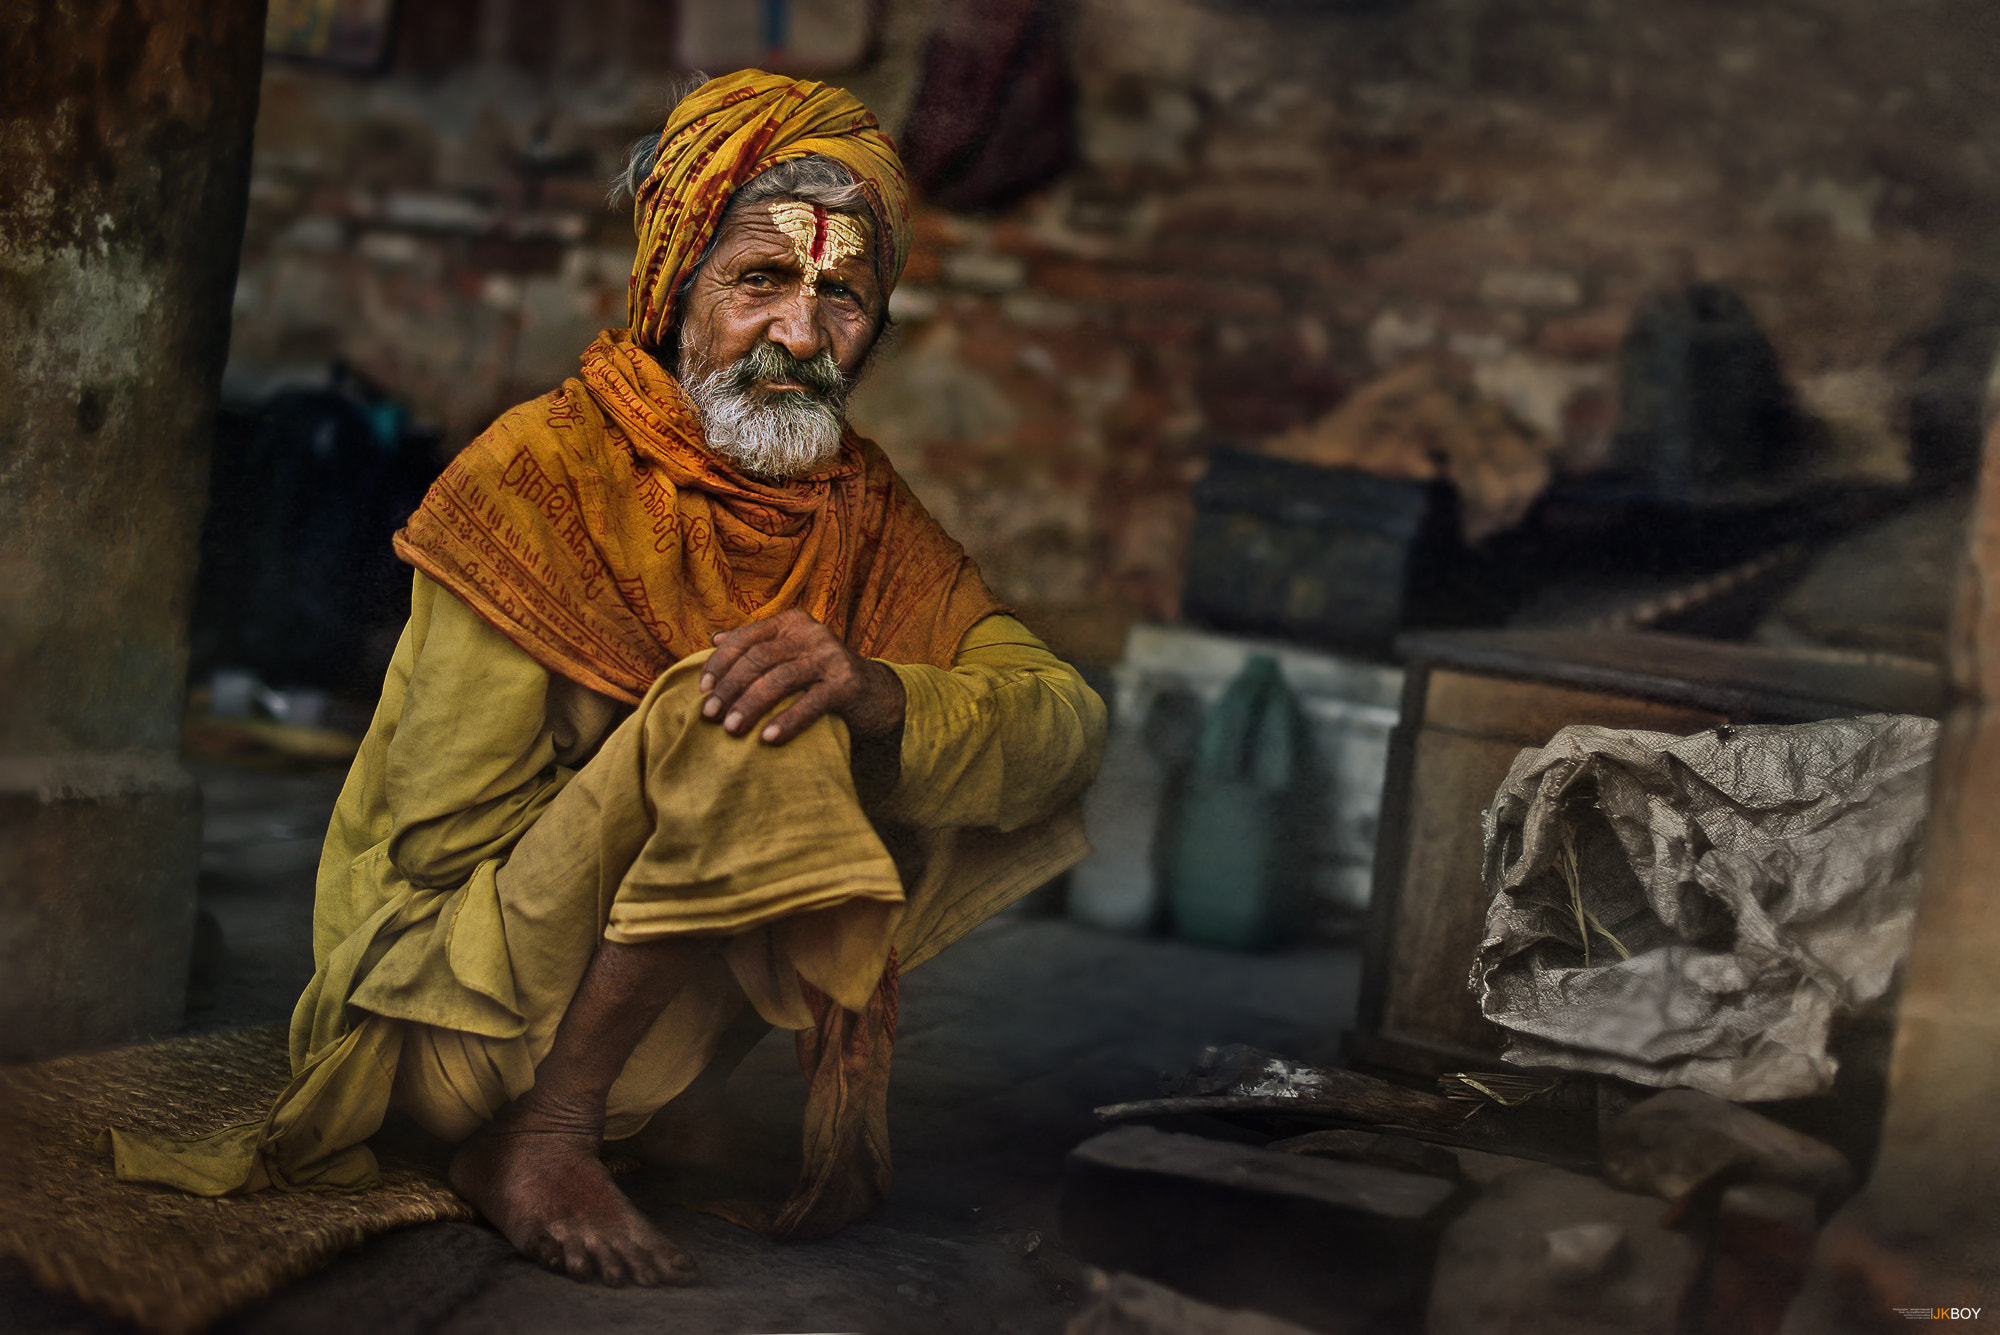 Photograph Resident of Temple by Jkboy Jatenipat on 500px